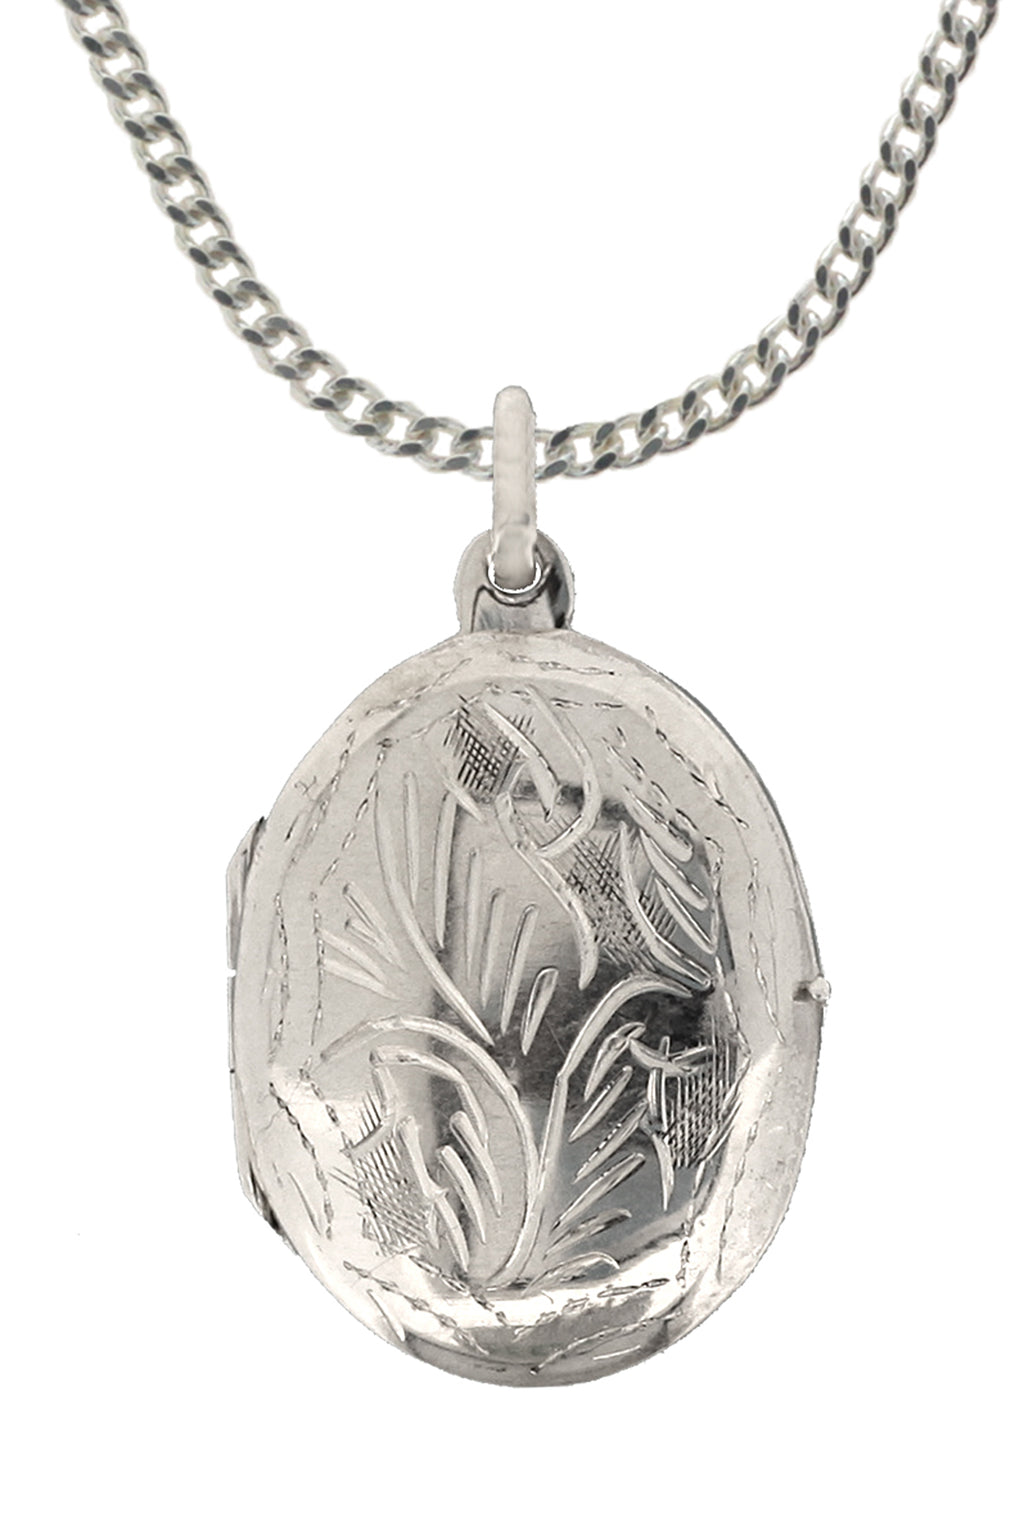 Engraved Sterling Silver Locket